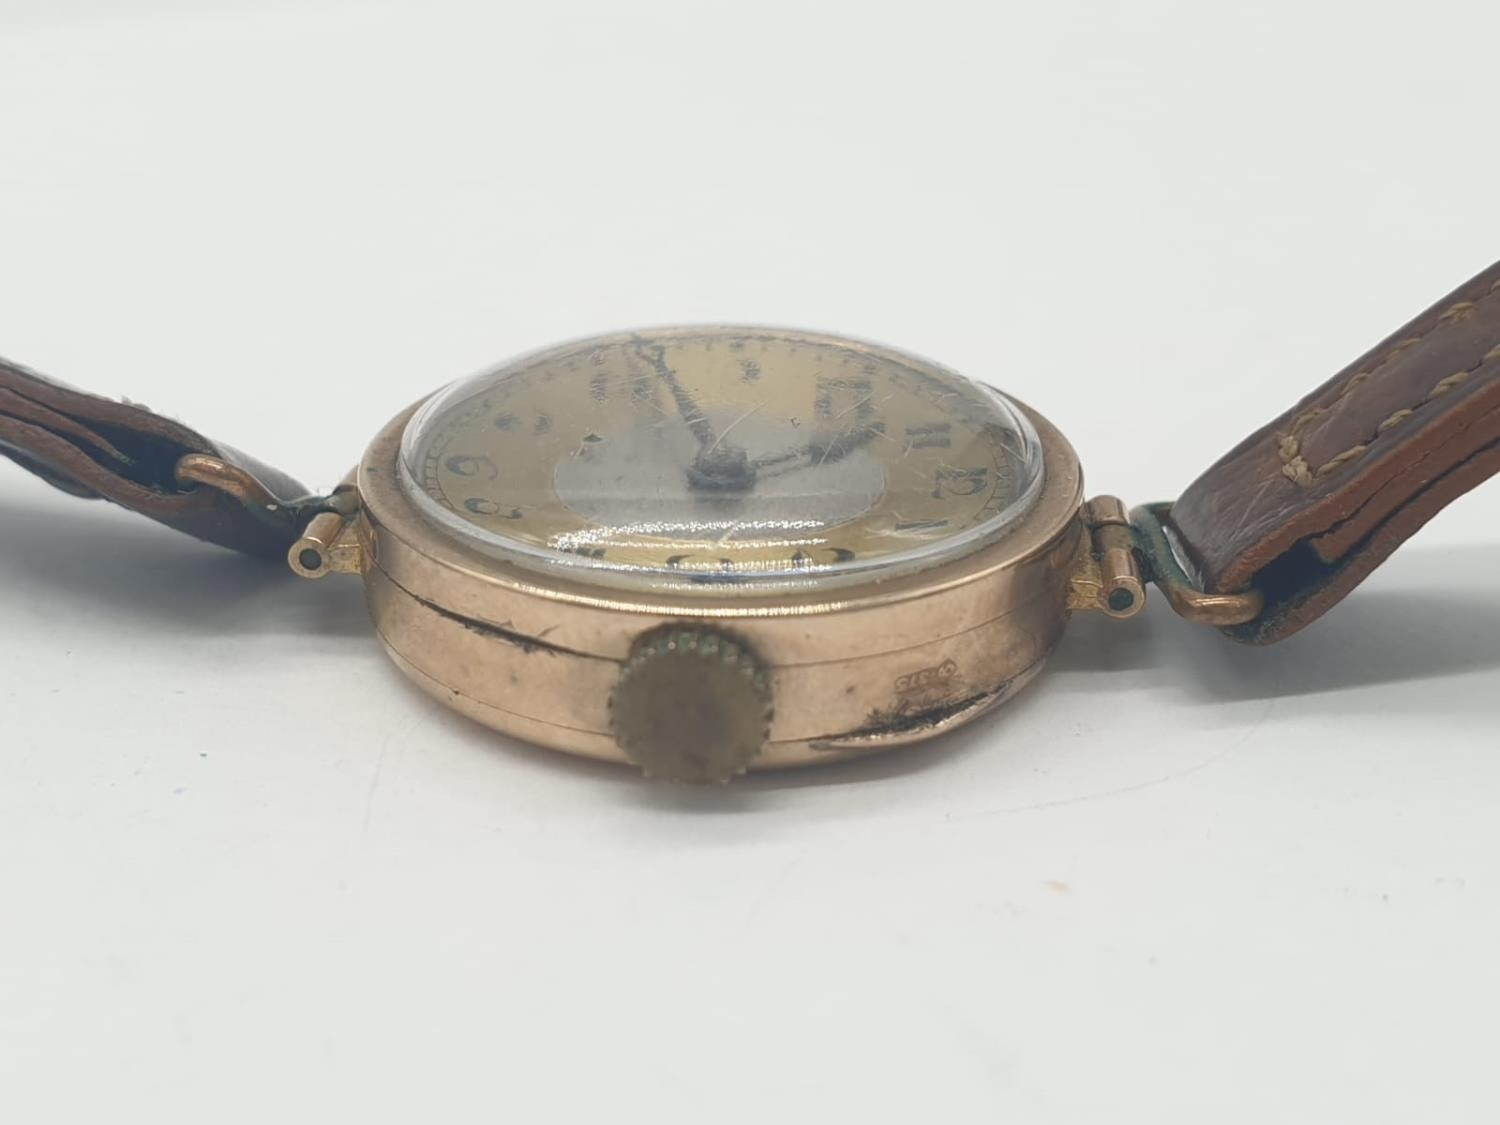 Vintage 9ct gold ladies wrist watch with leather strap - Image 8 of 9